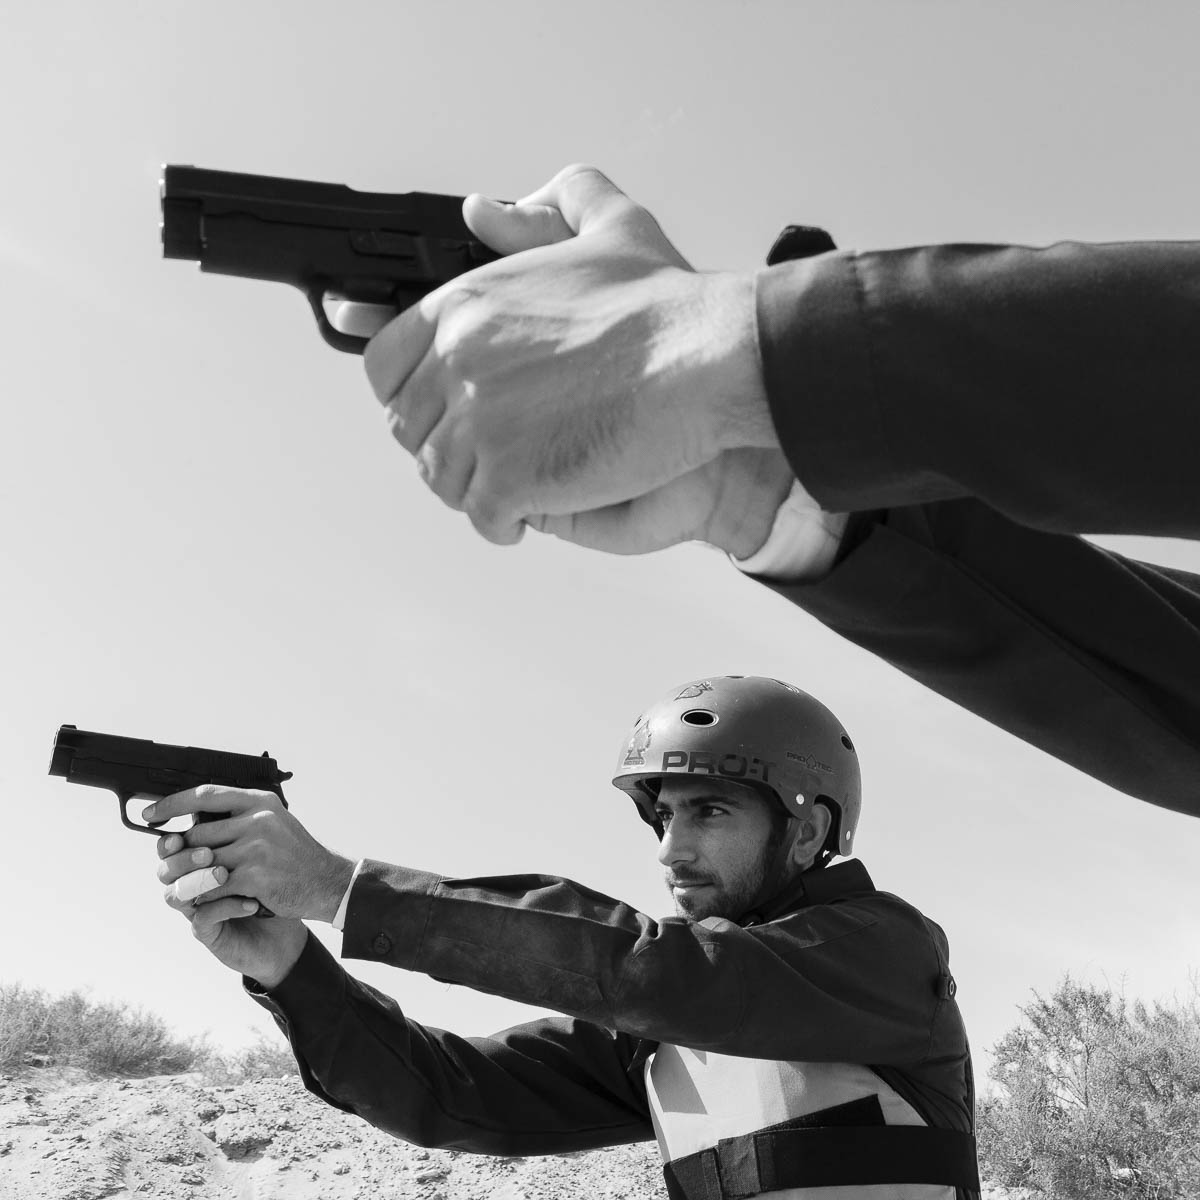 Police marksmen practice their shooting skills at a firing range in the UAE